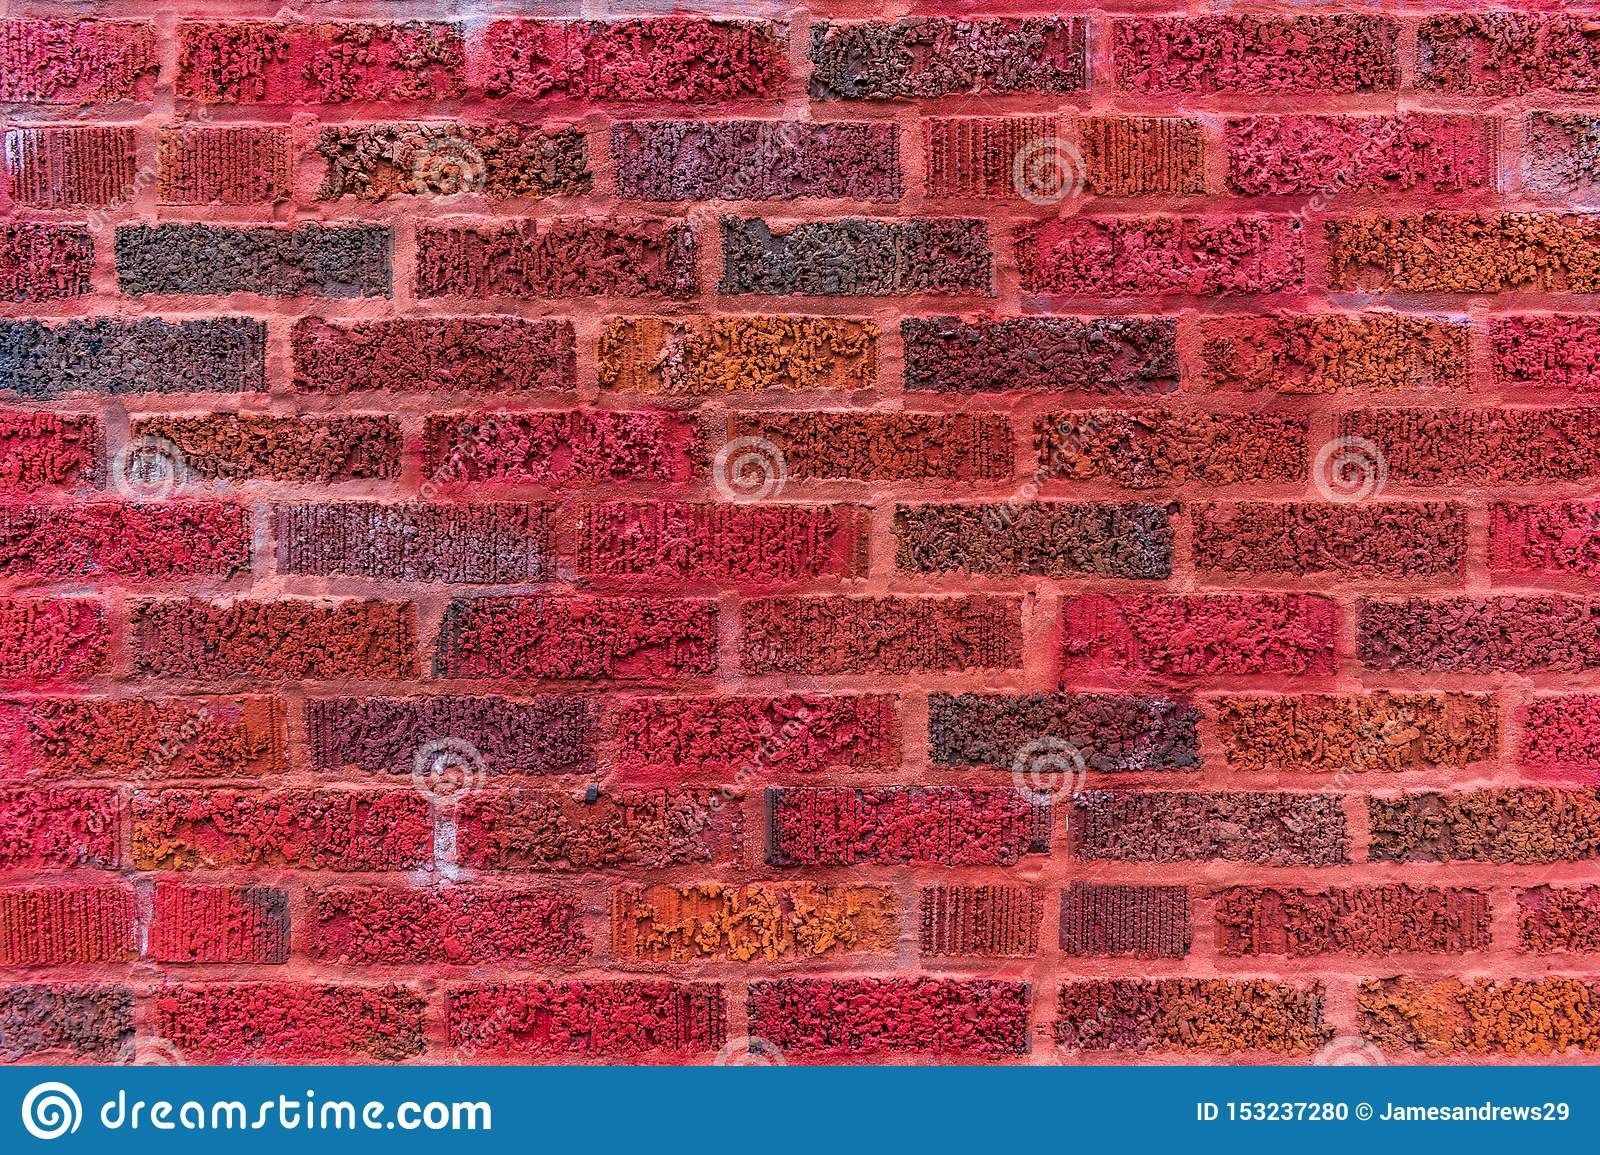 Colorful Red Brick Wall Backround